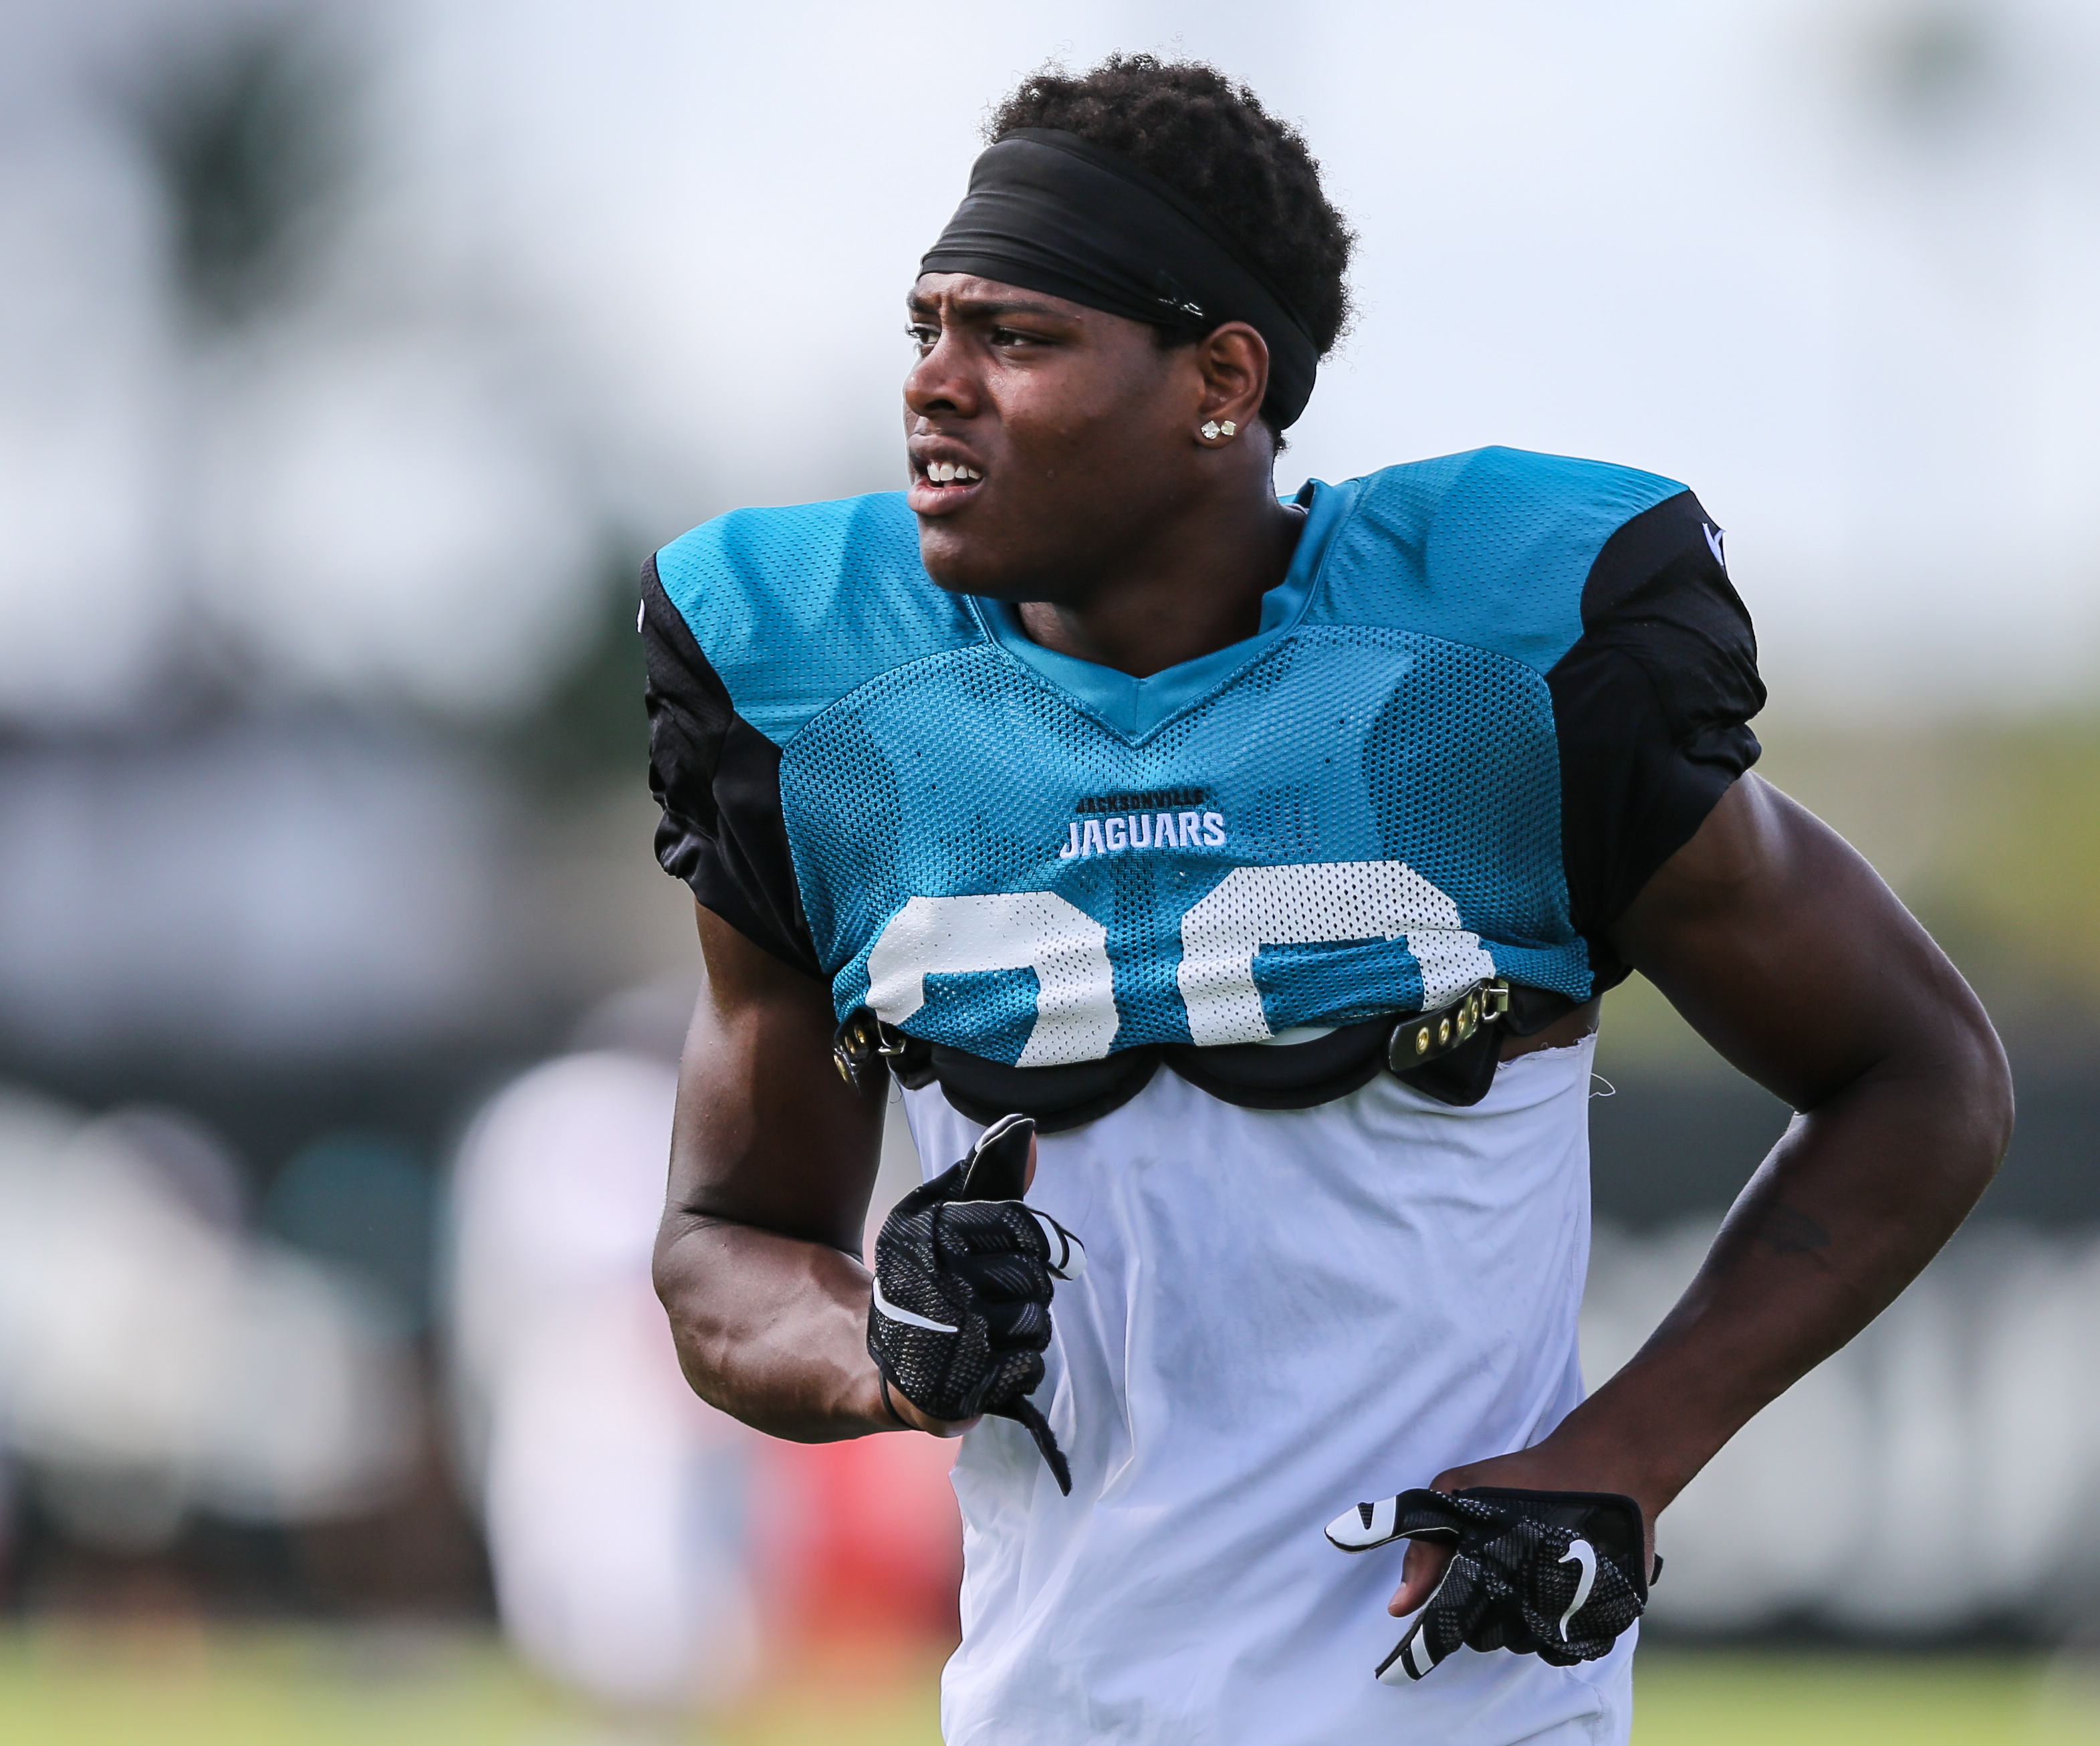 acksonville Jaguar corner Jalen Ramsey (20) jogs between drills during a joint NFL football training camp with the Tampa Bay Buccaneers at Florida Blue Field in Jacksonville, Fla., Wednesday, Aug. 17, 2016. (The Florida Times-Union, Gary McCullough)